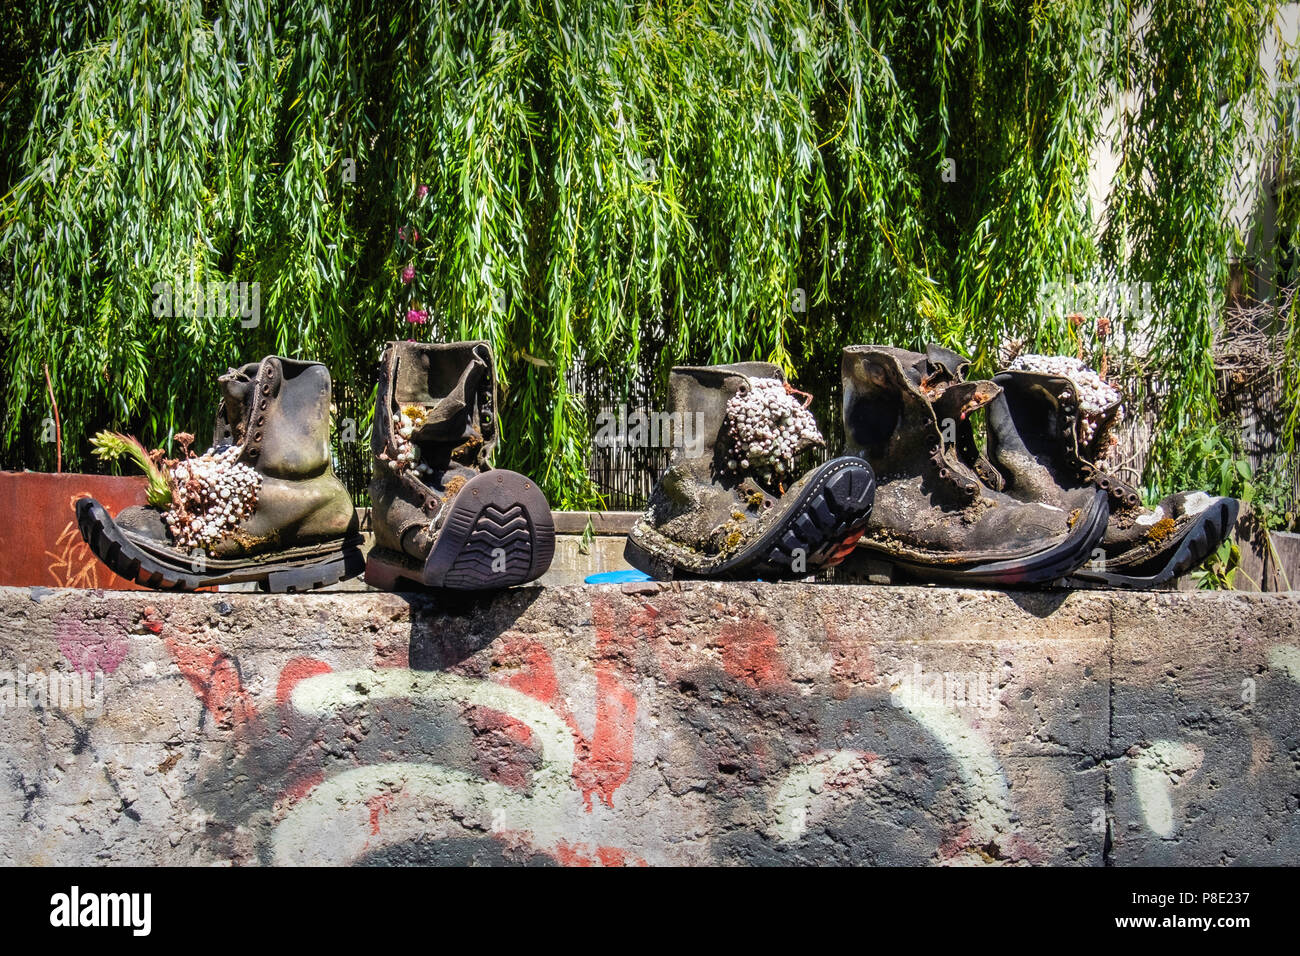 Berlin Prenzlauer Berg. Quirky plant containers. Alpine Sempervivum plants in weathered old boots in garden of Ausland music centre - Stock Image